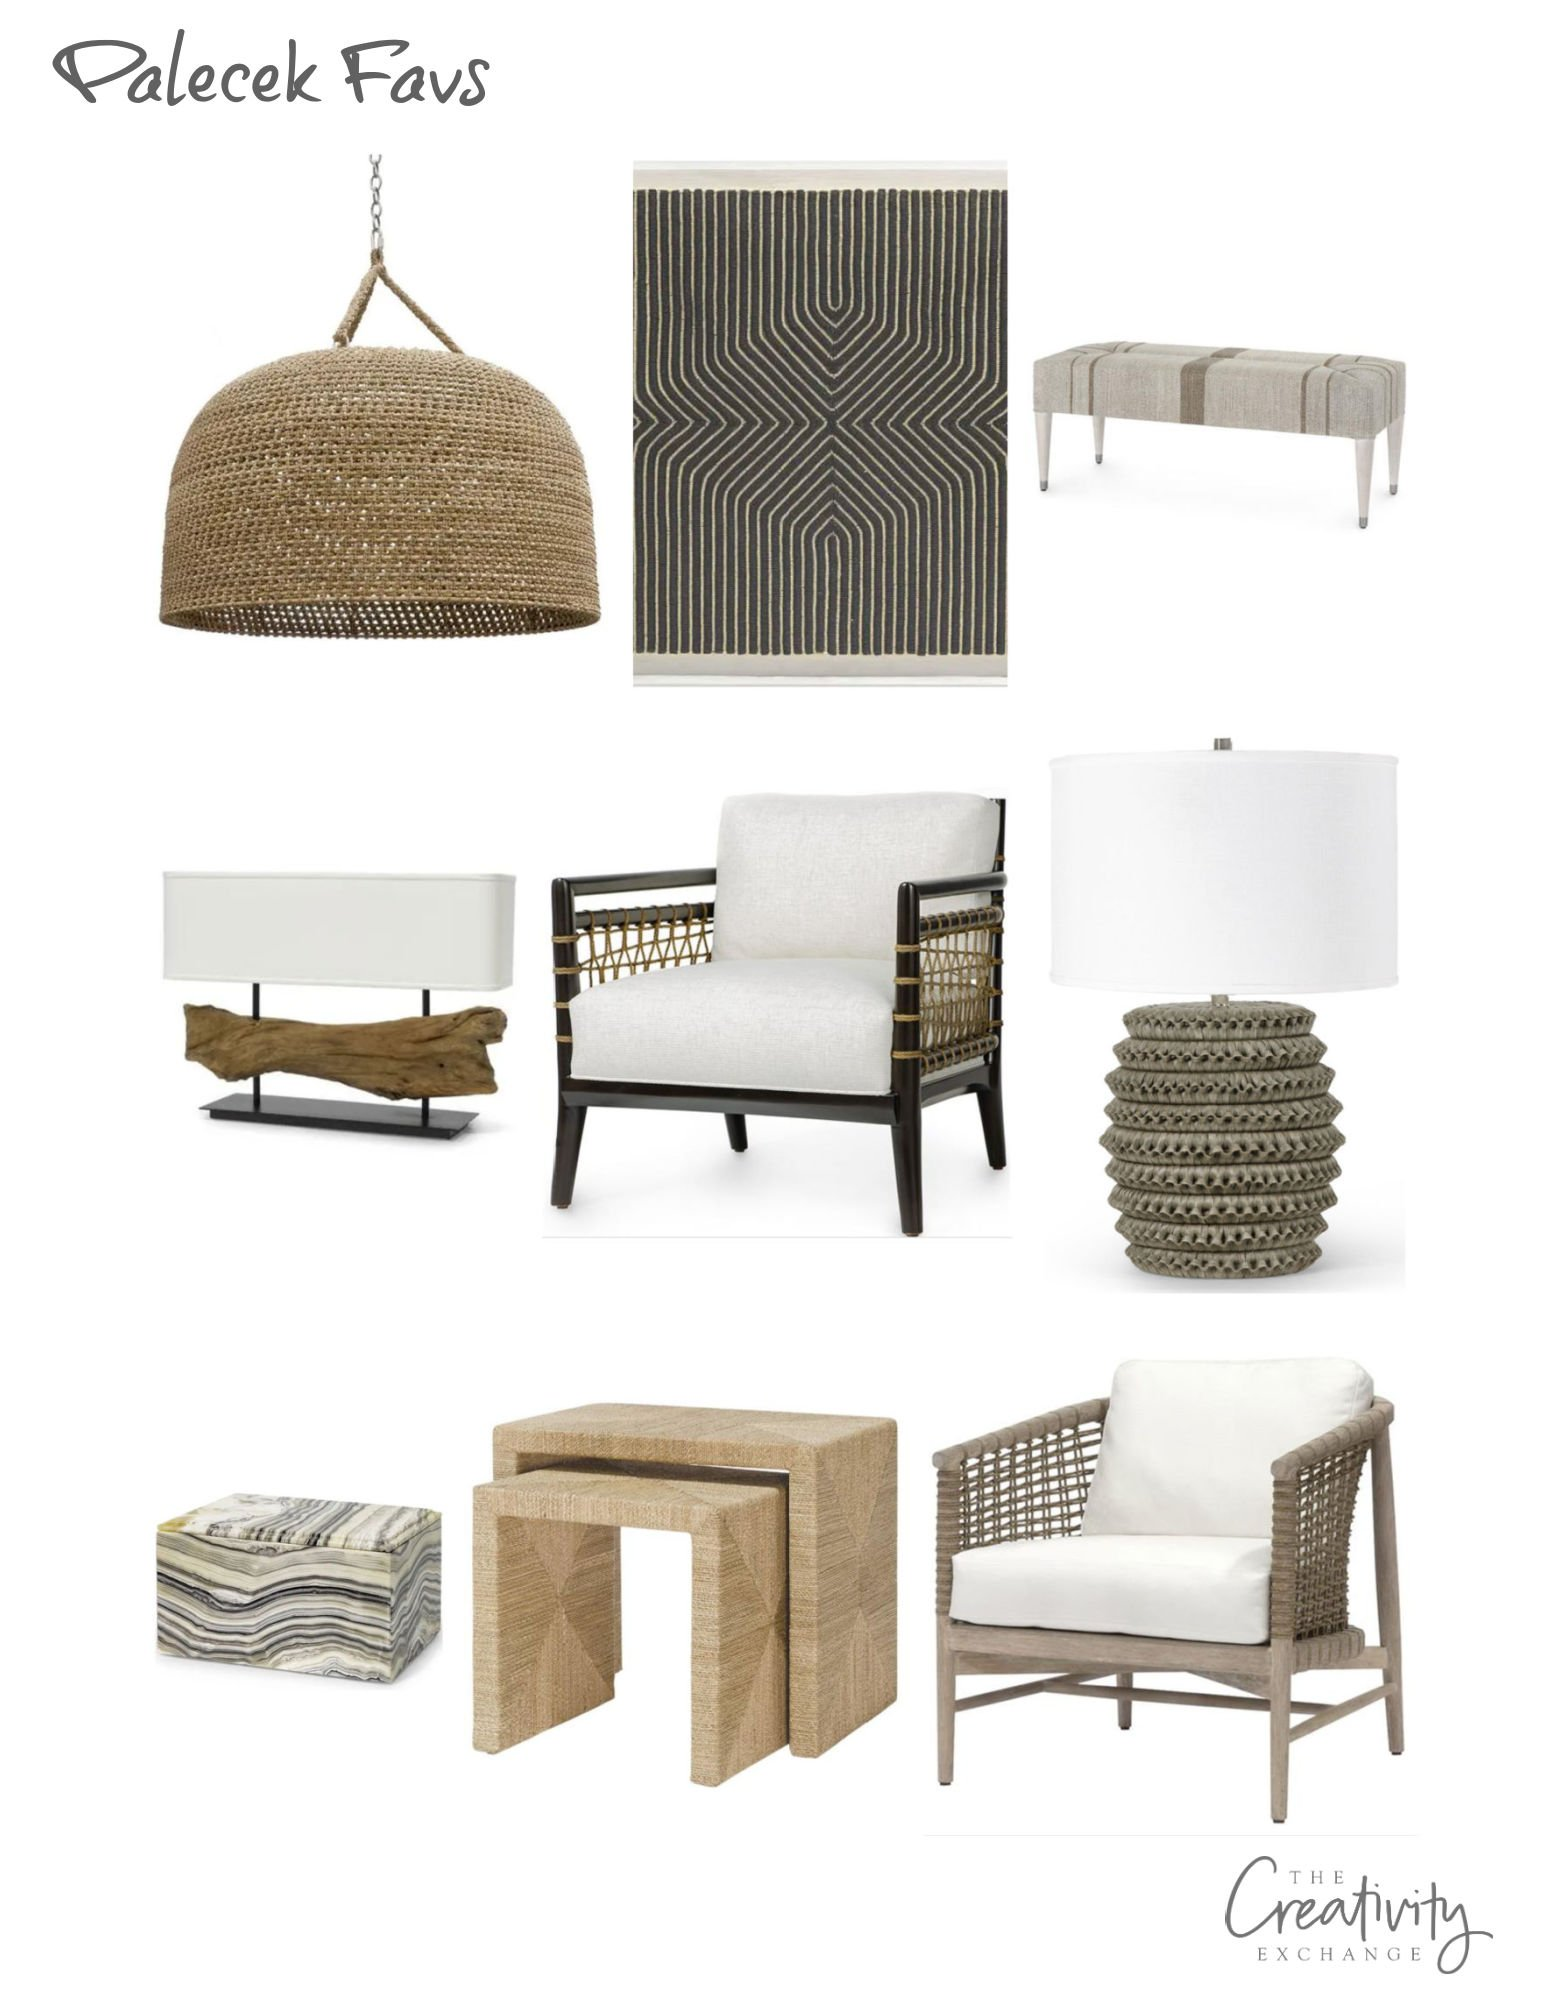 California Casual Modern Furniture and Decor